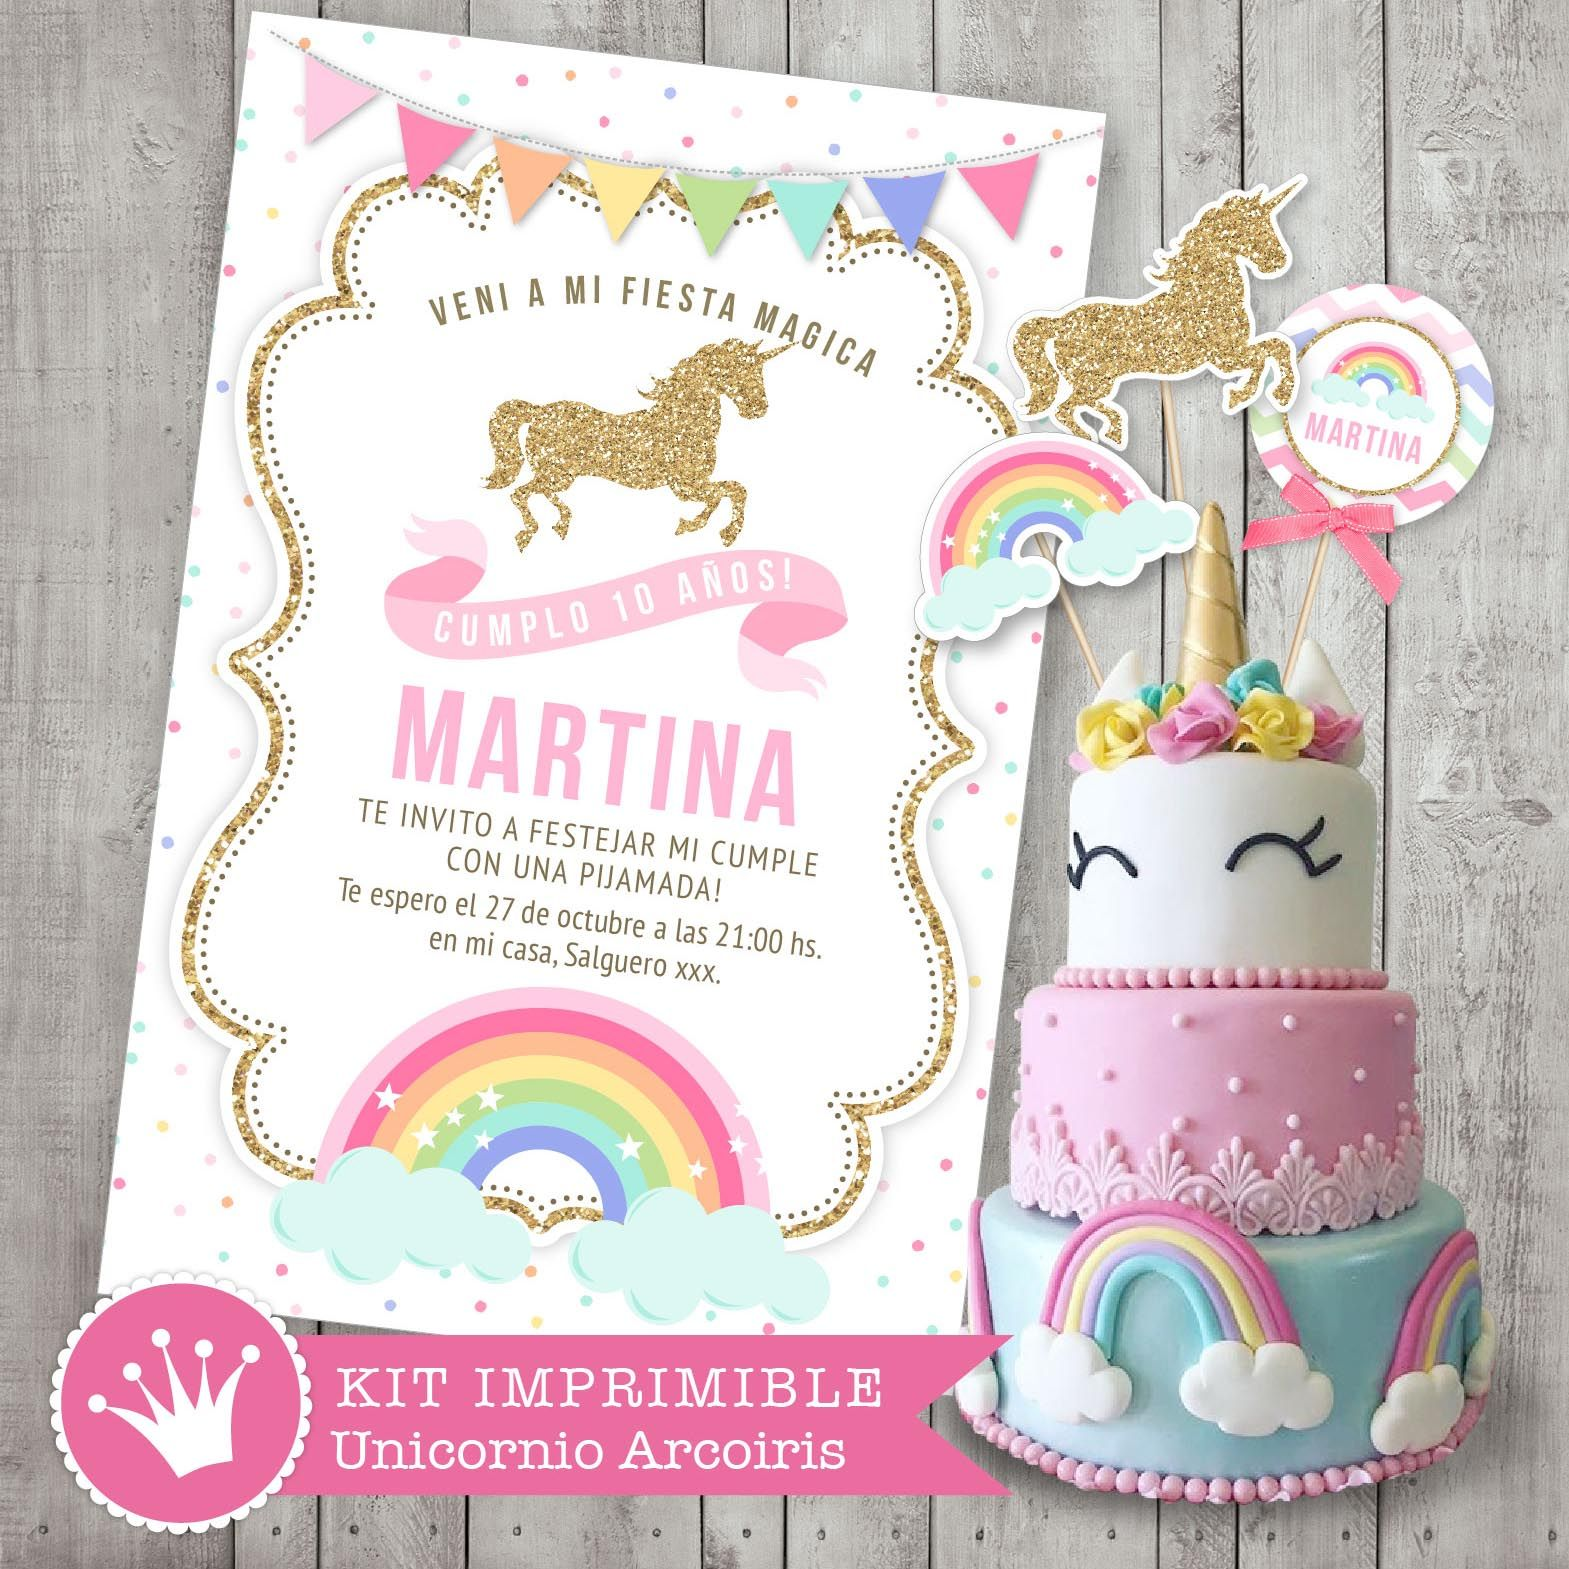 Kit imprimible unicornio y arcoiris. Decoración para fiestas y ...